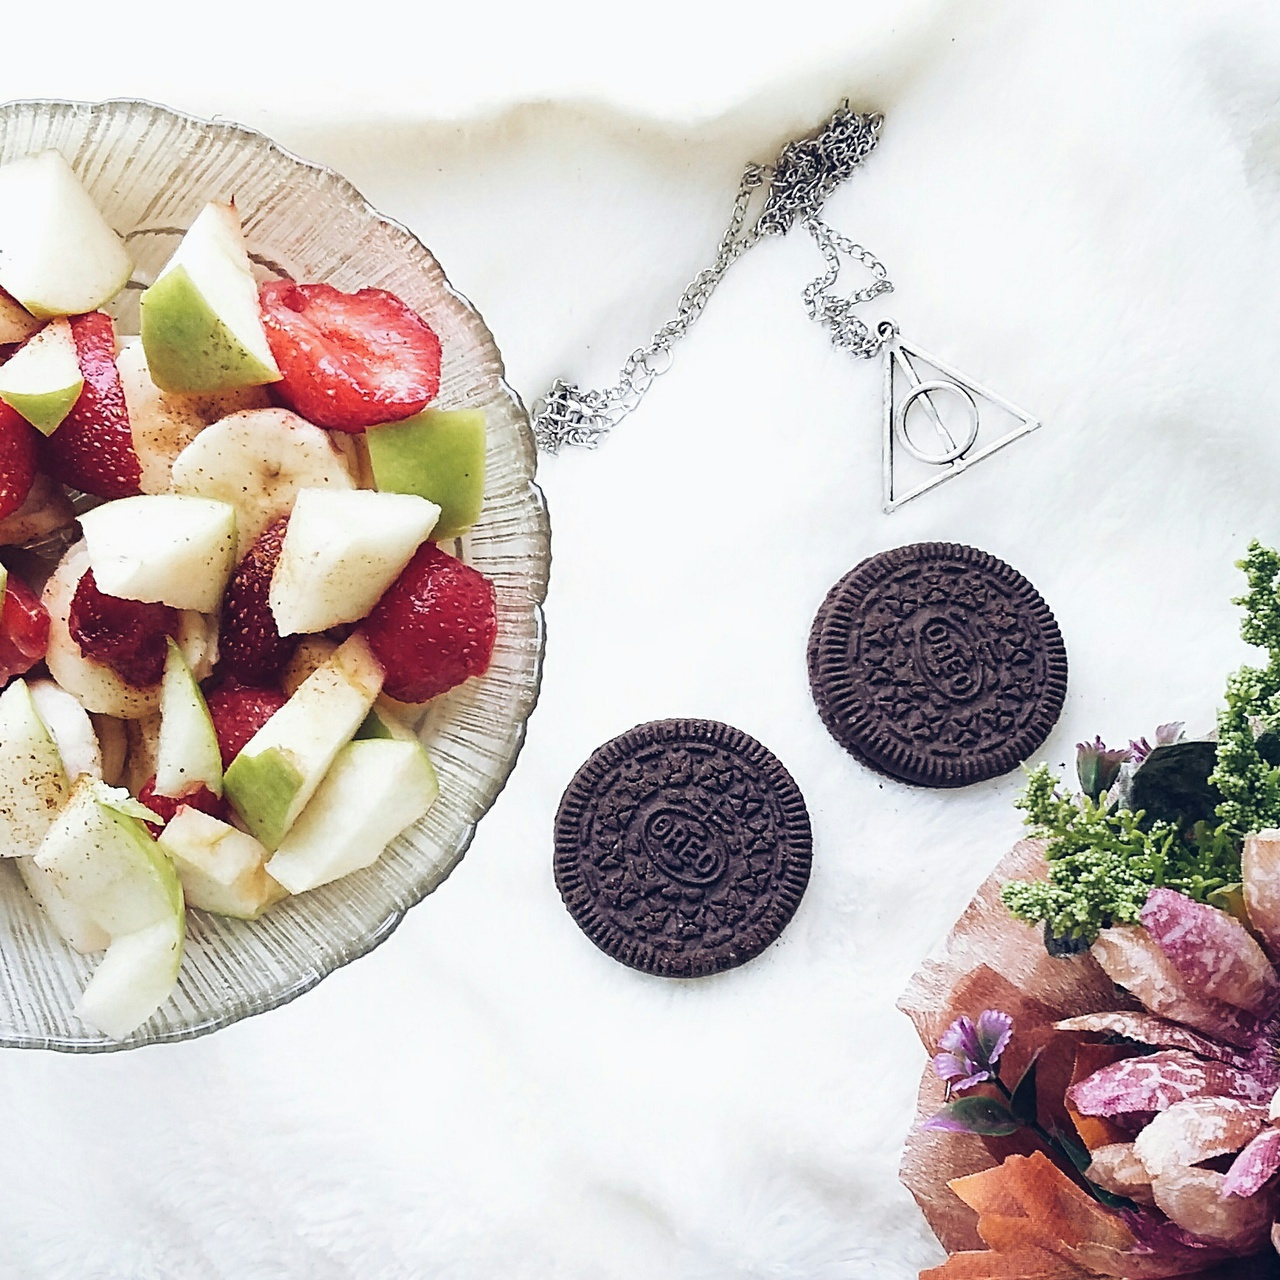 apple, harrypotter, and oreo image